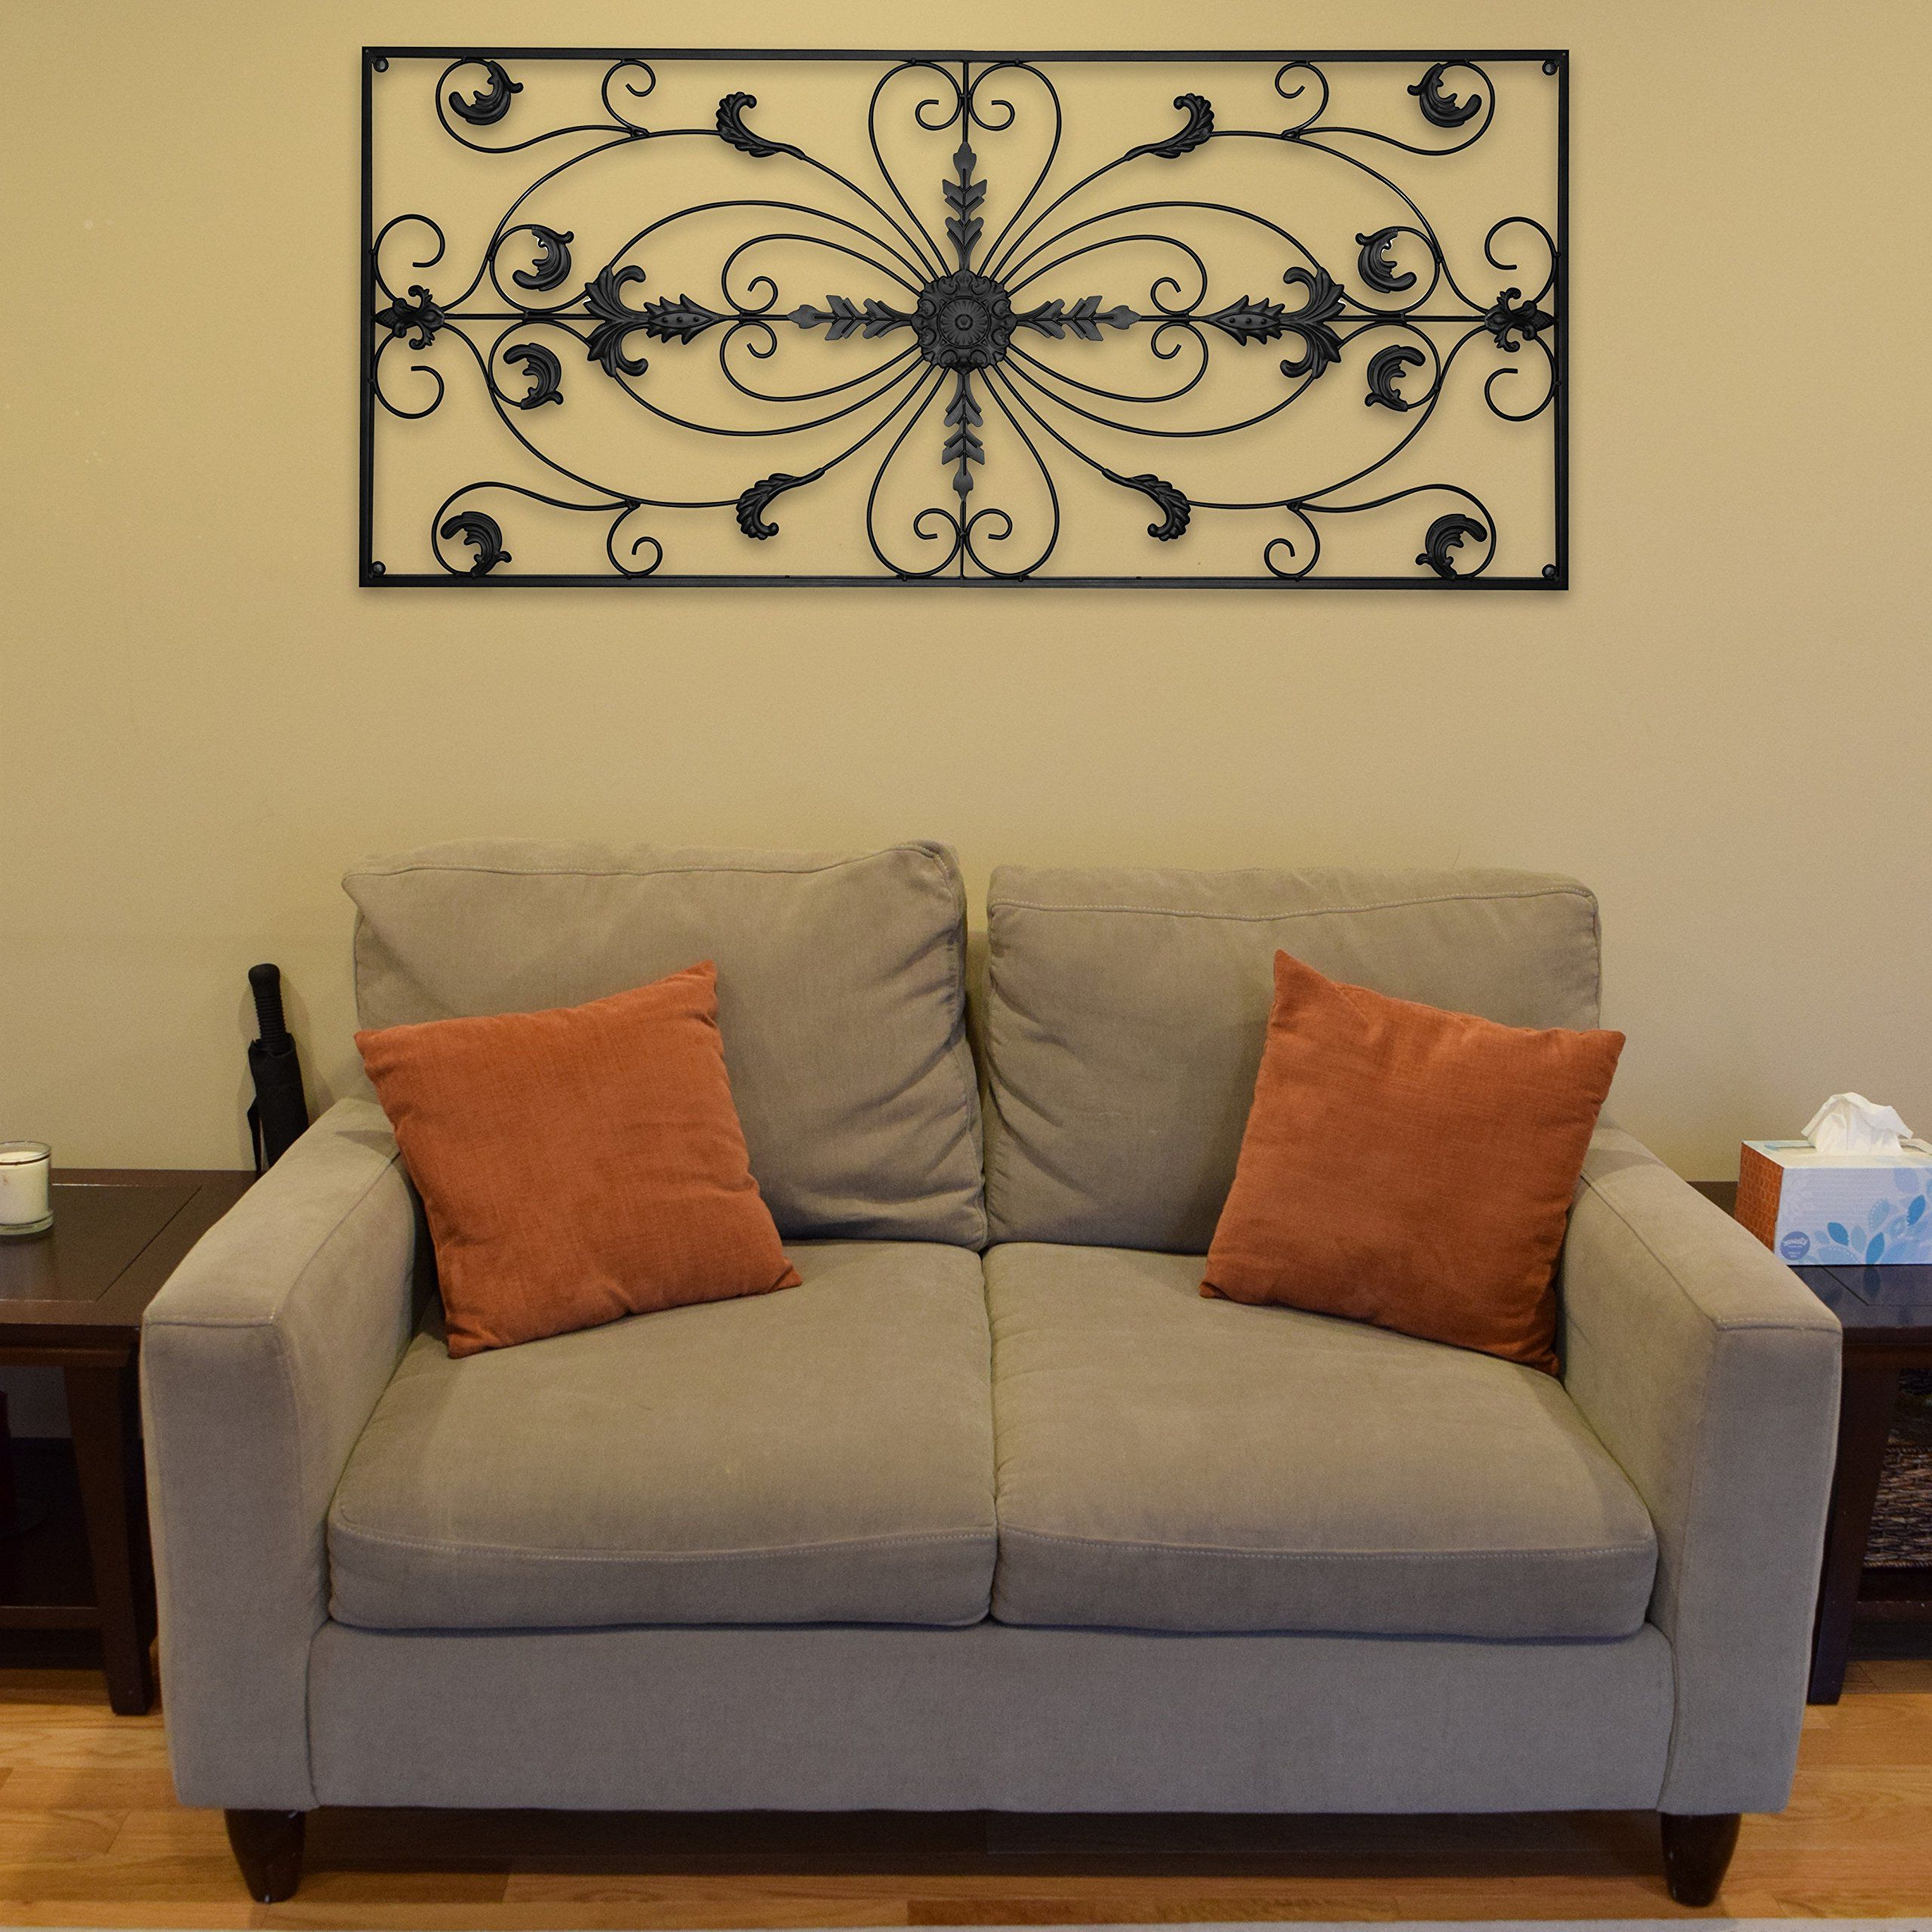 Rectangular Metal Wall Décor Within Recent Gbhome Gh6778 Metal Wall Decor Decorative Victorian Style (View 16 of 20)